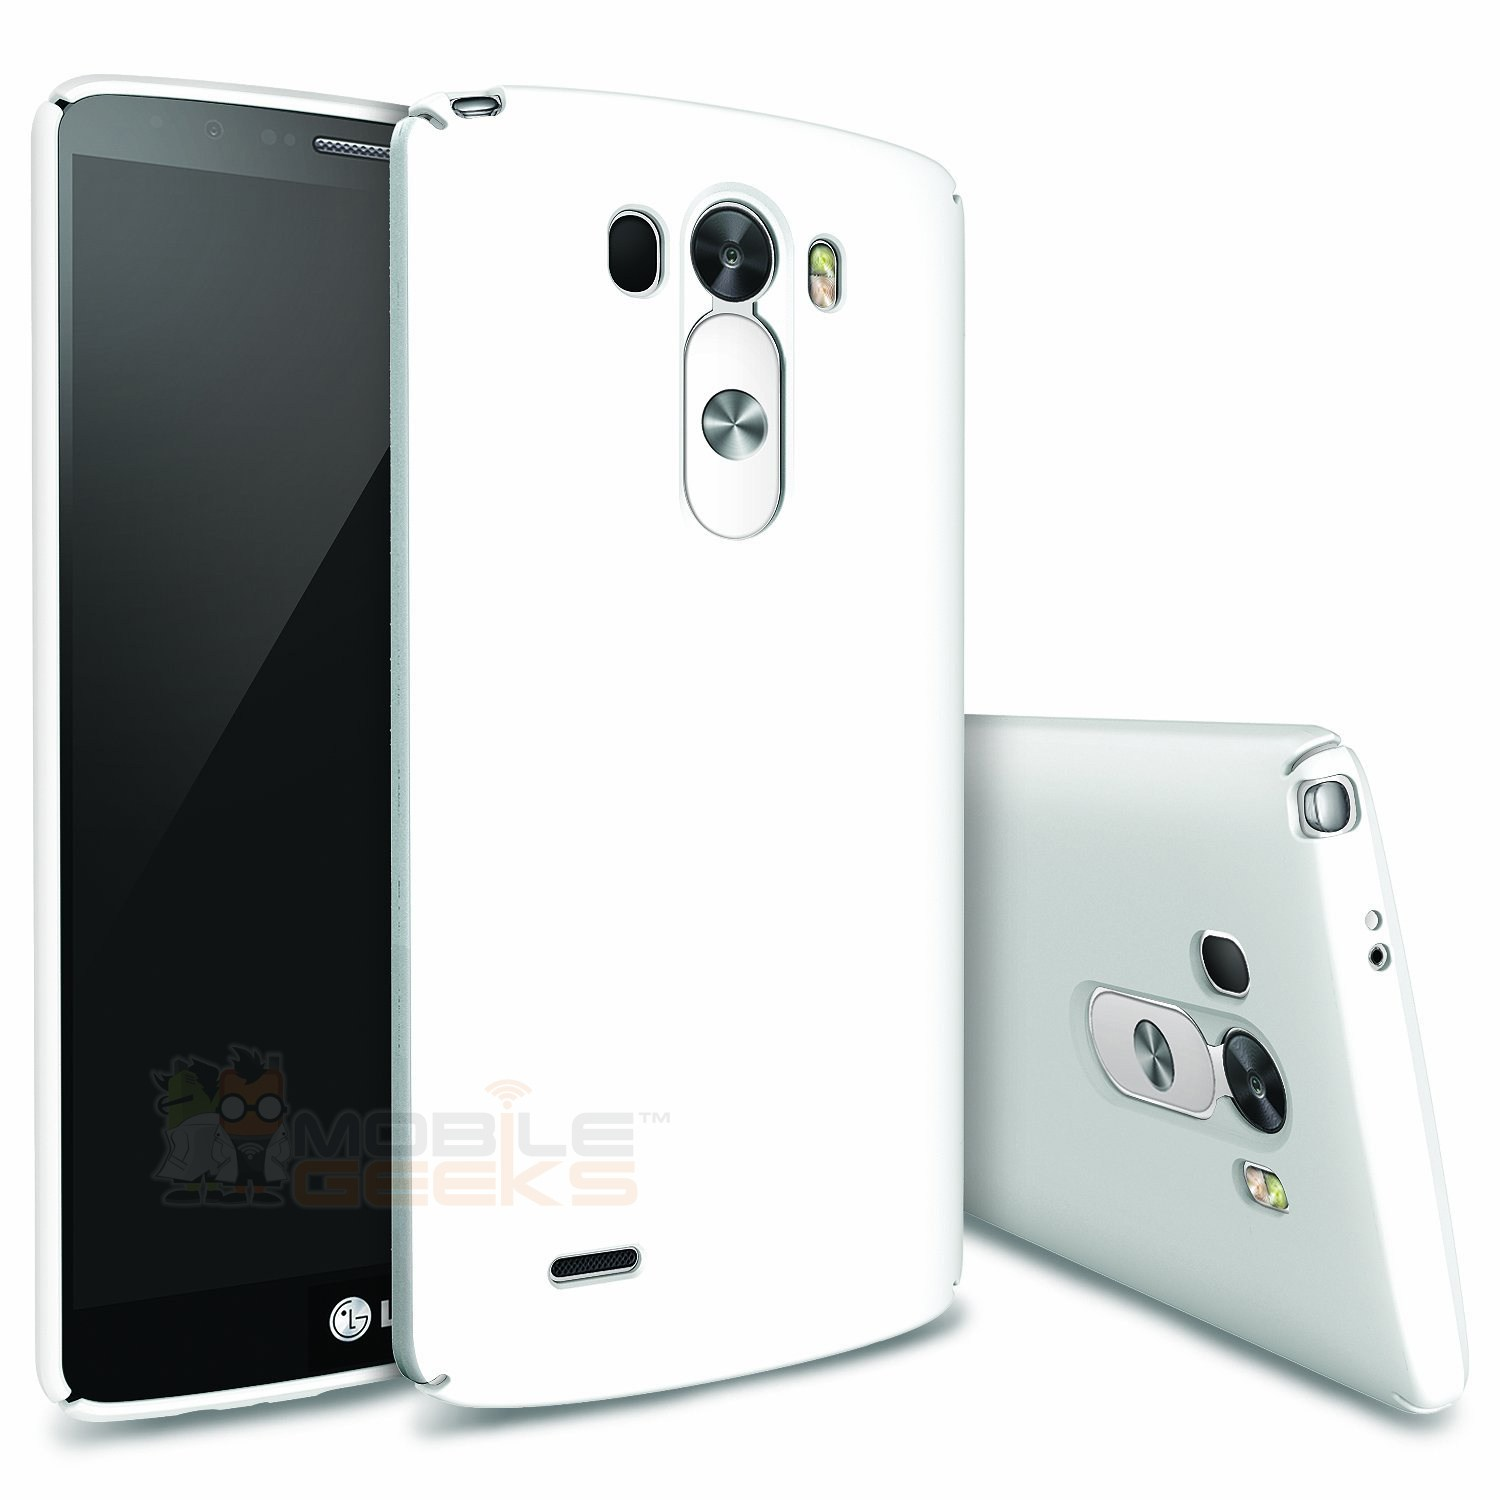 LG G3 : Snapdragon 805, batterie de 3200 mAh et capteur photo de 13 MP ?